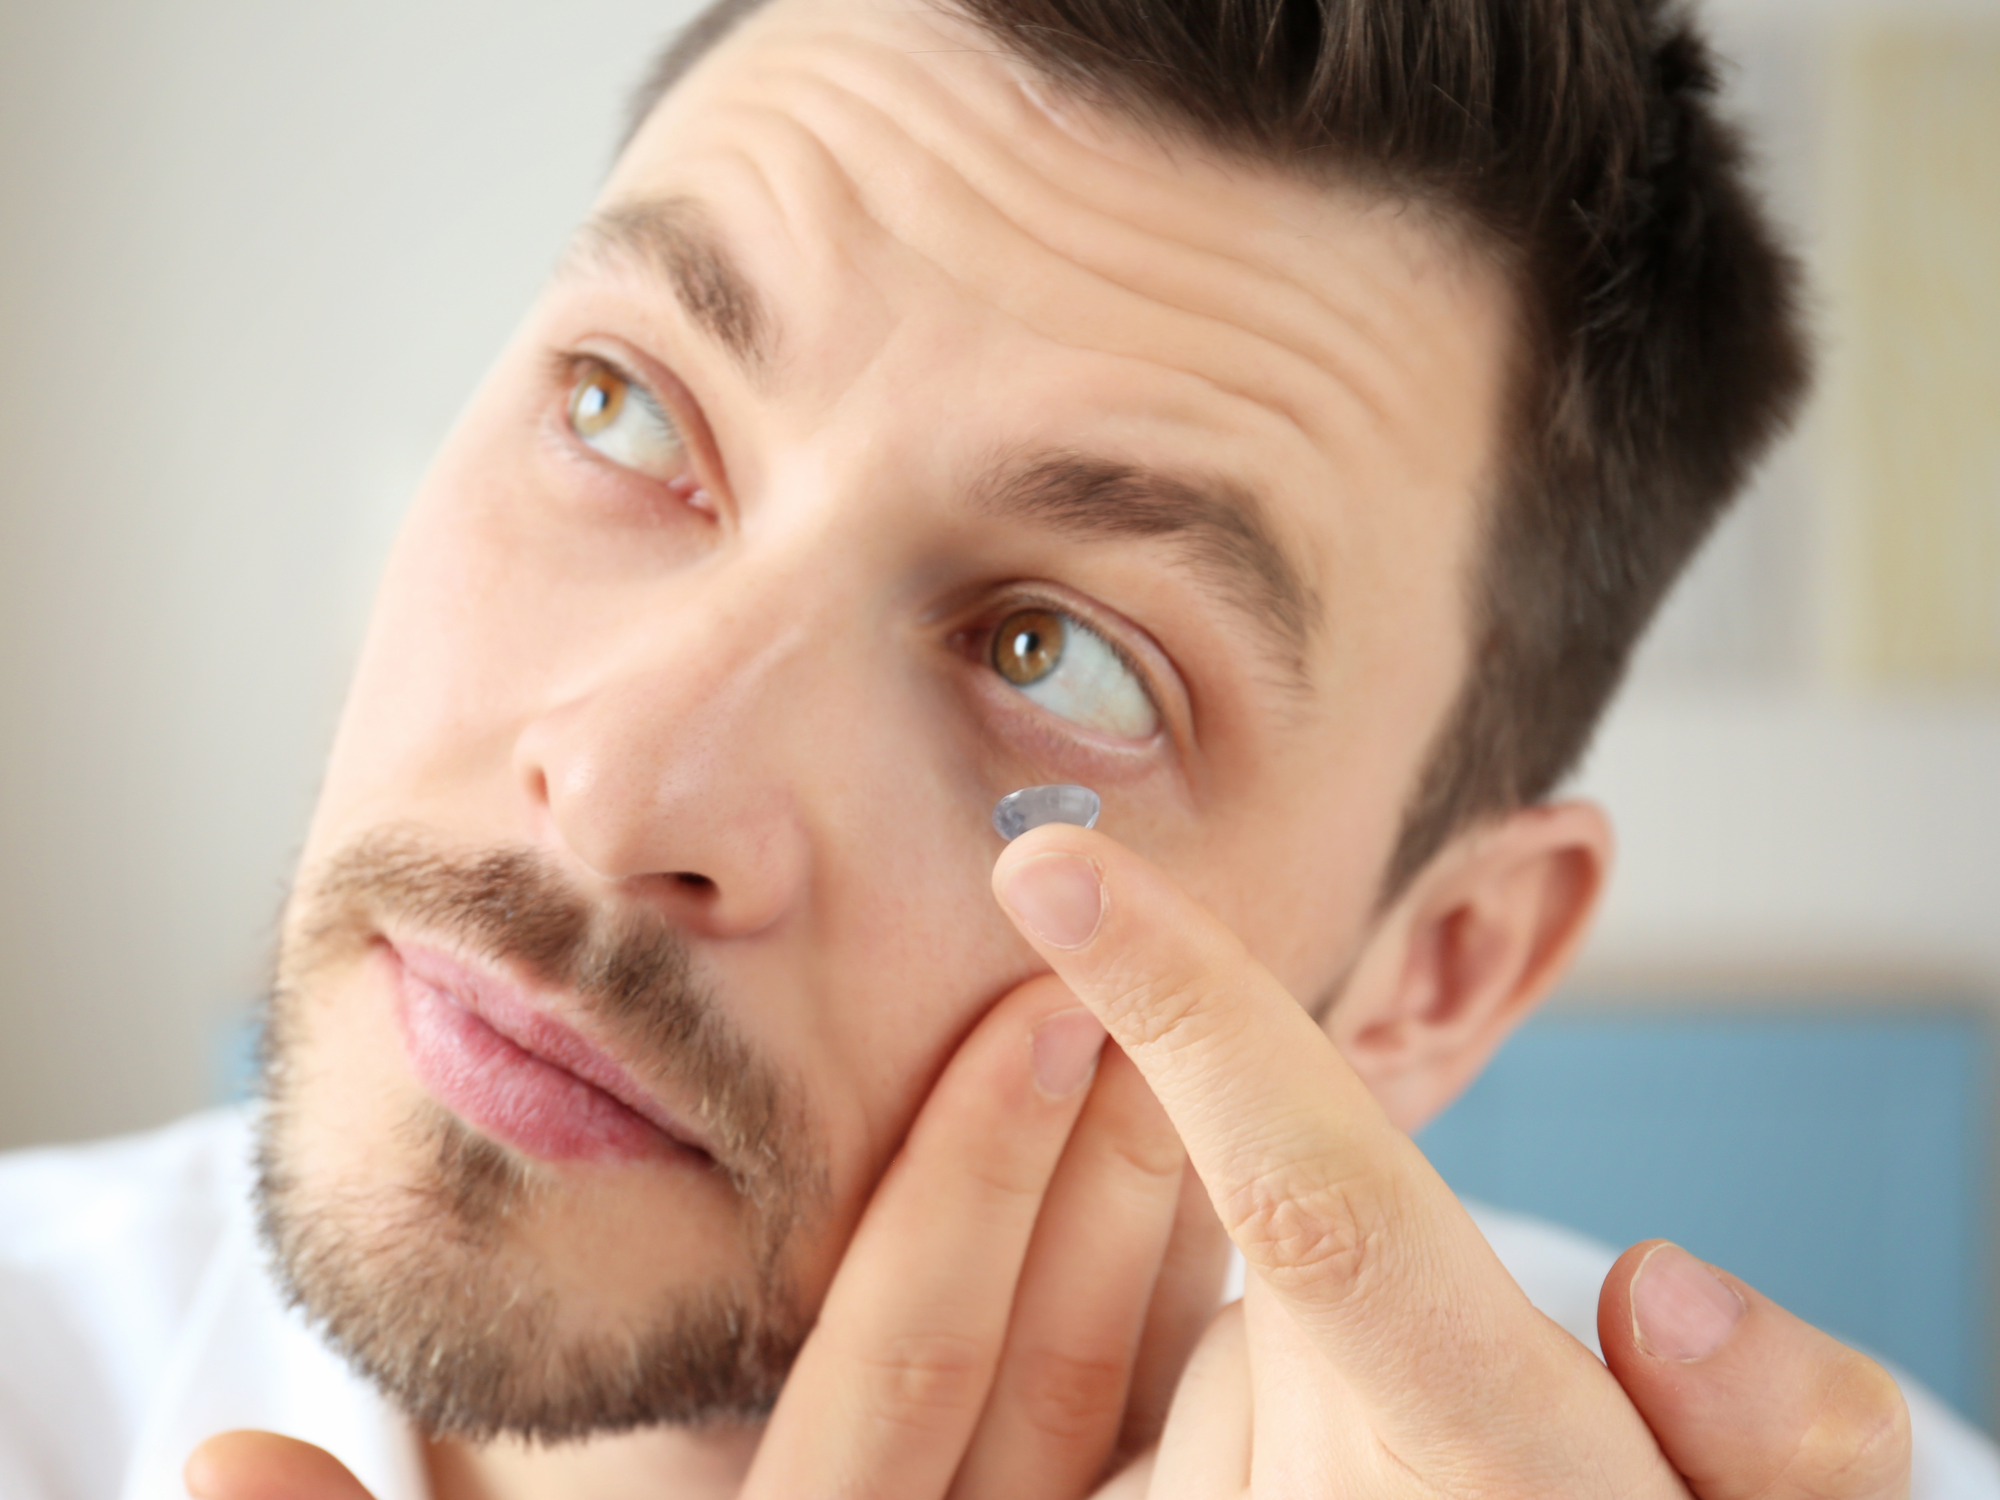 Benefits of Daily Contact Lenses